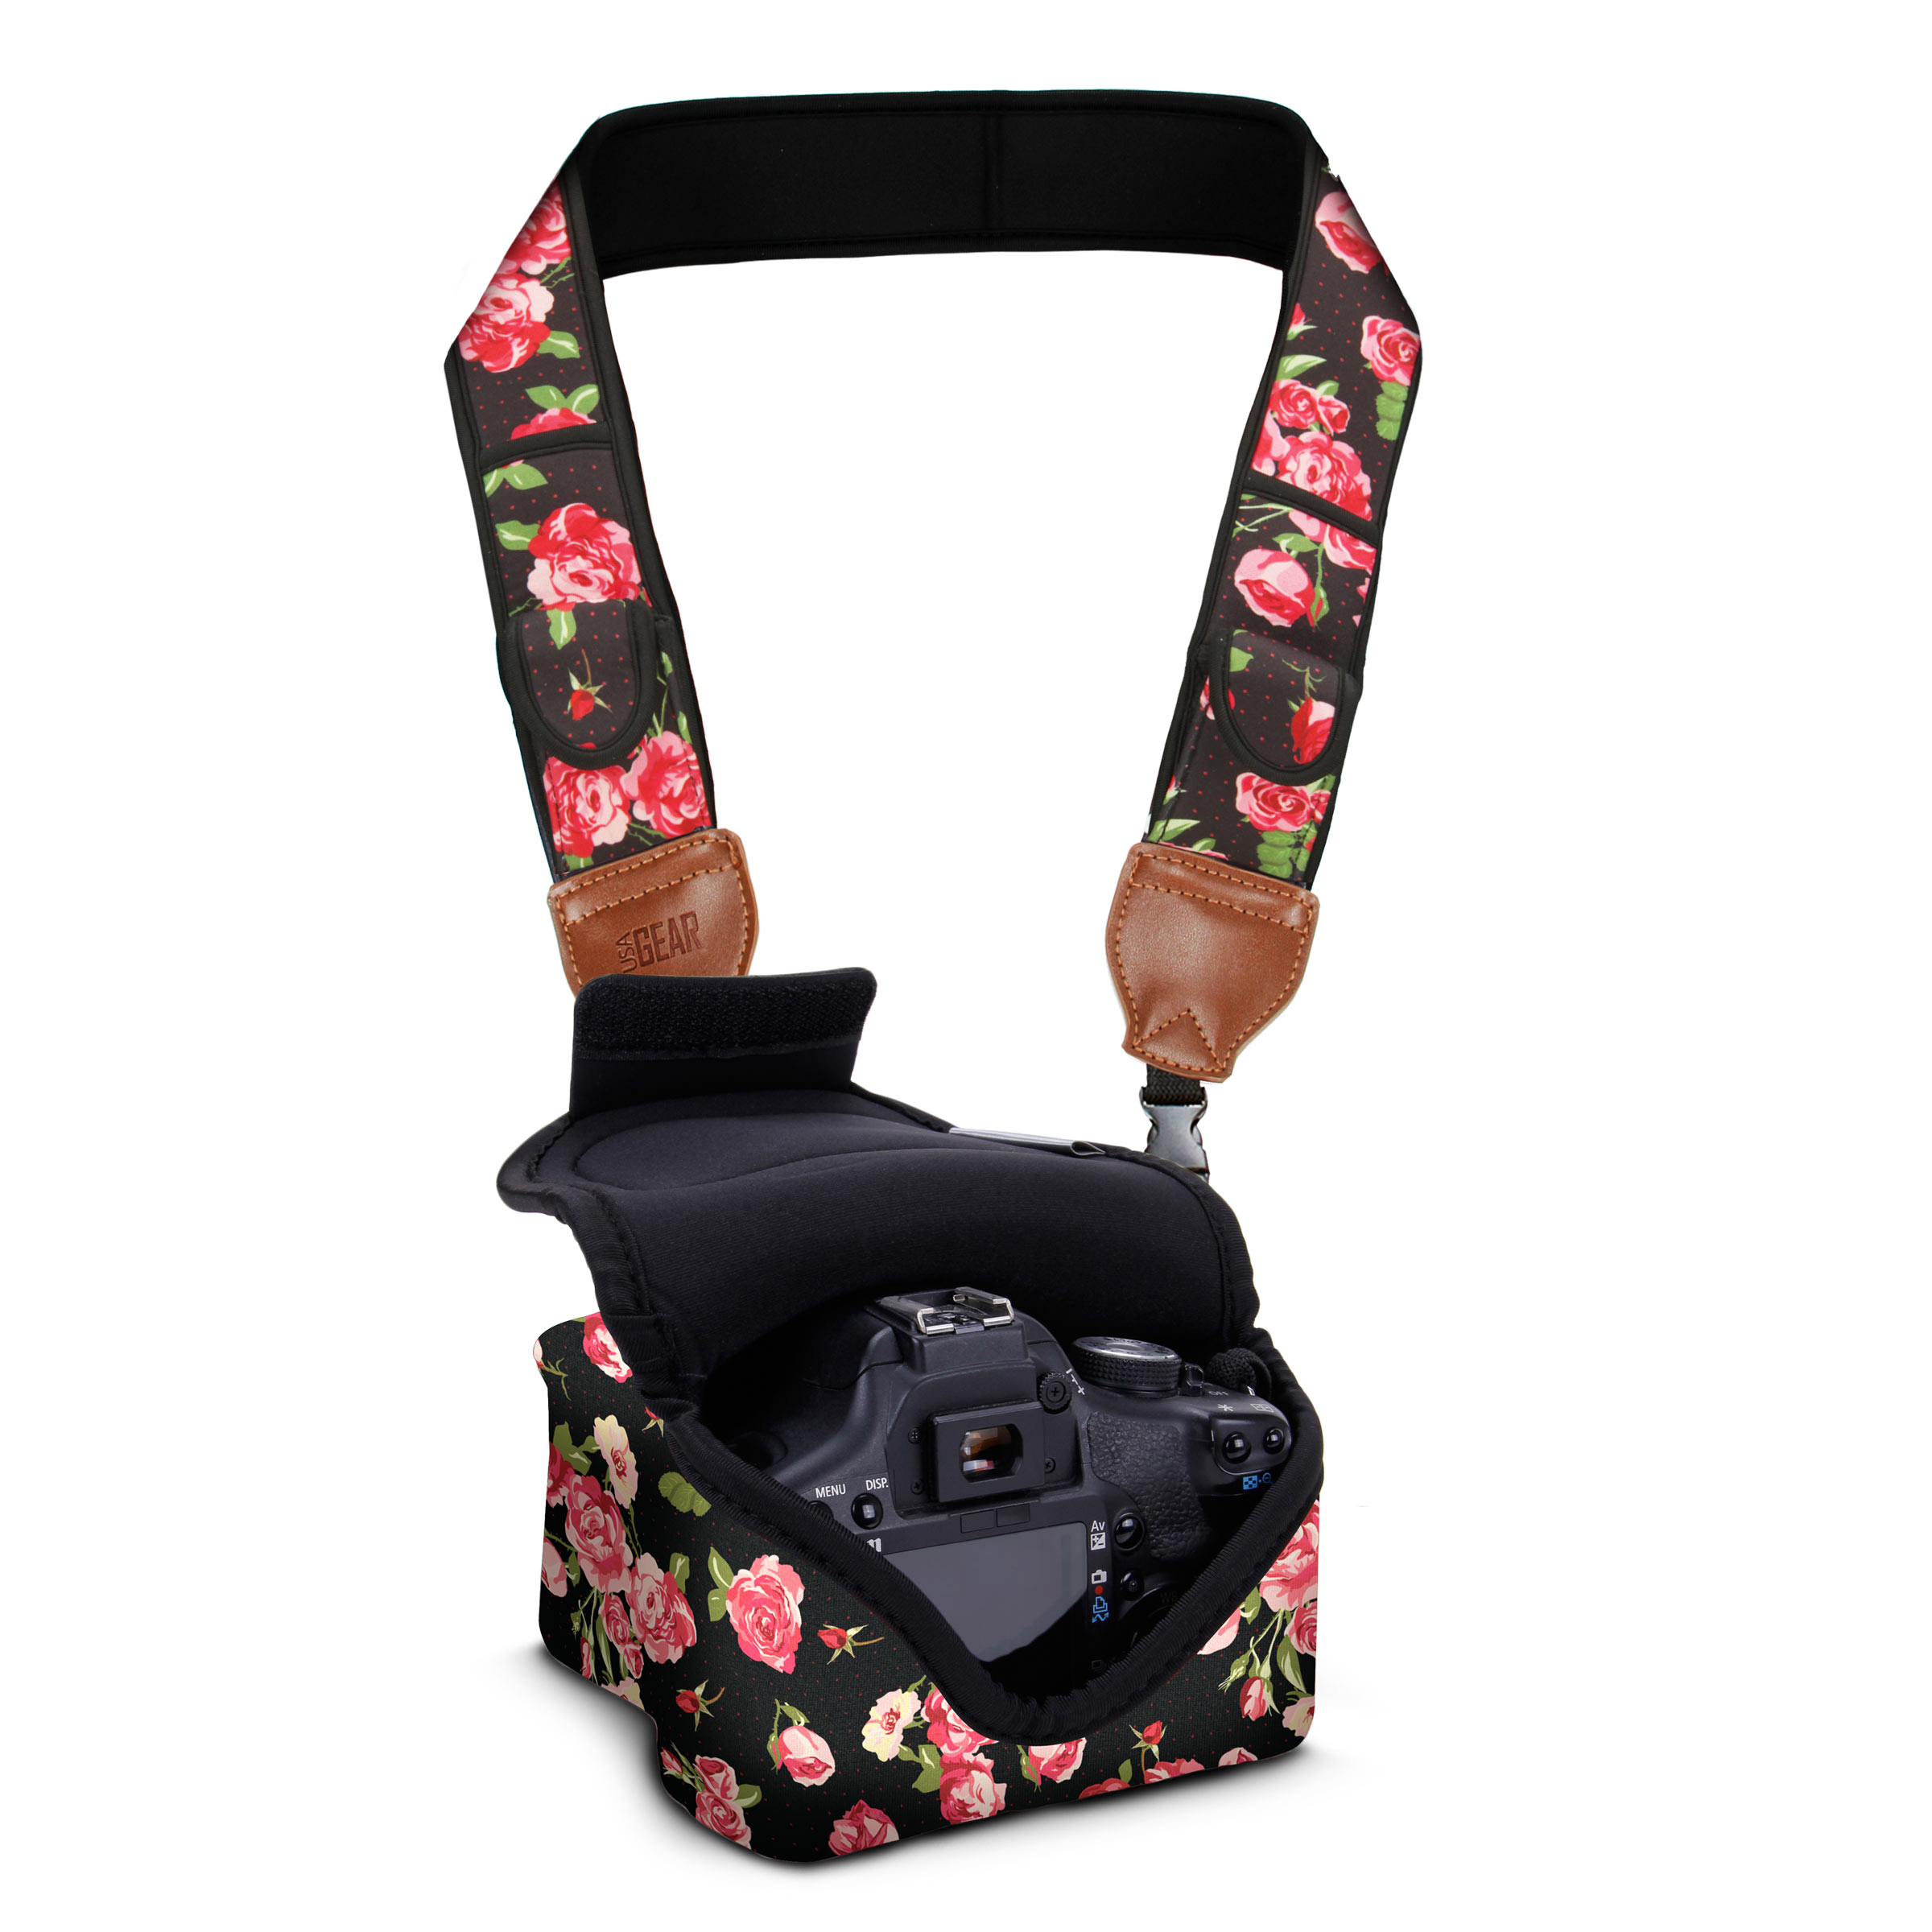 Compatible with Canon Instant Cameras USA Gear Digital Camera Neck Strap with Neoprene Design Fujifilm Black Paisley Accessory Pockets and Quick Release Buckles Sony and More Mirrorless Nikon